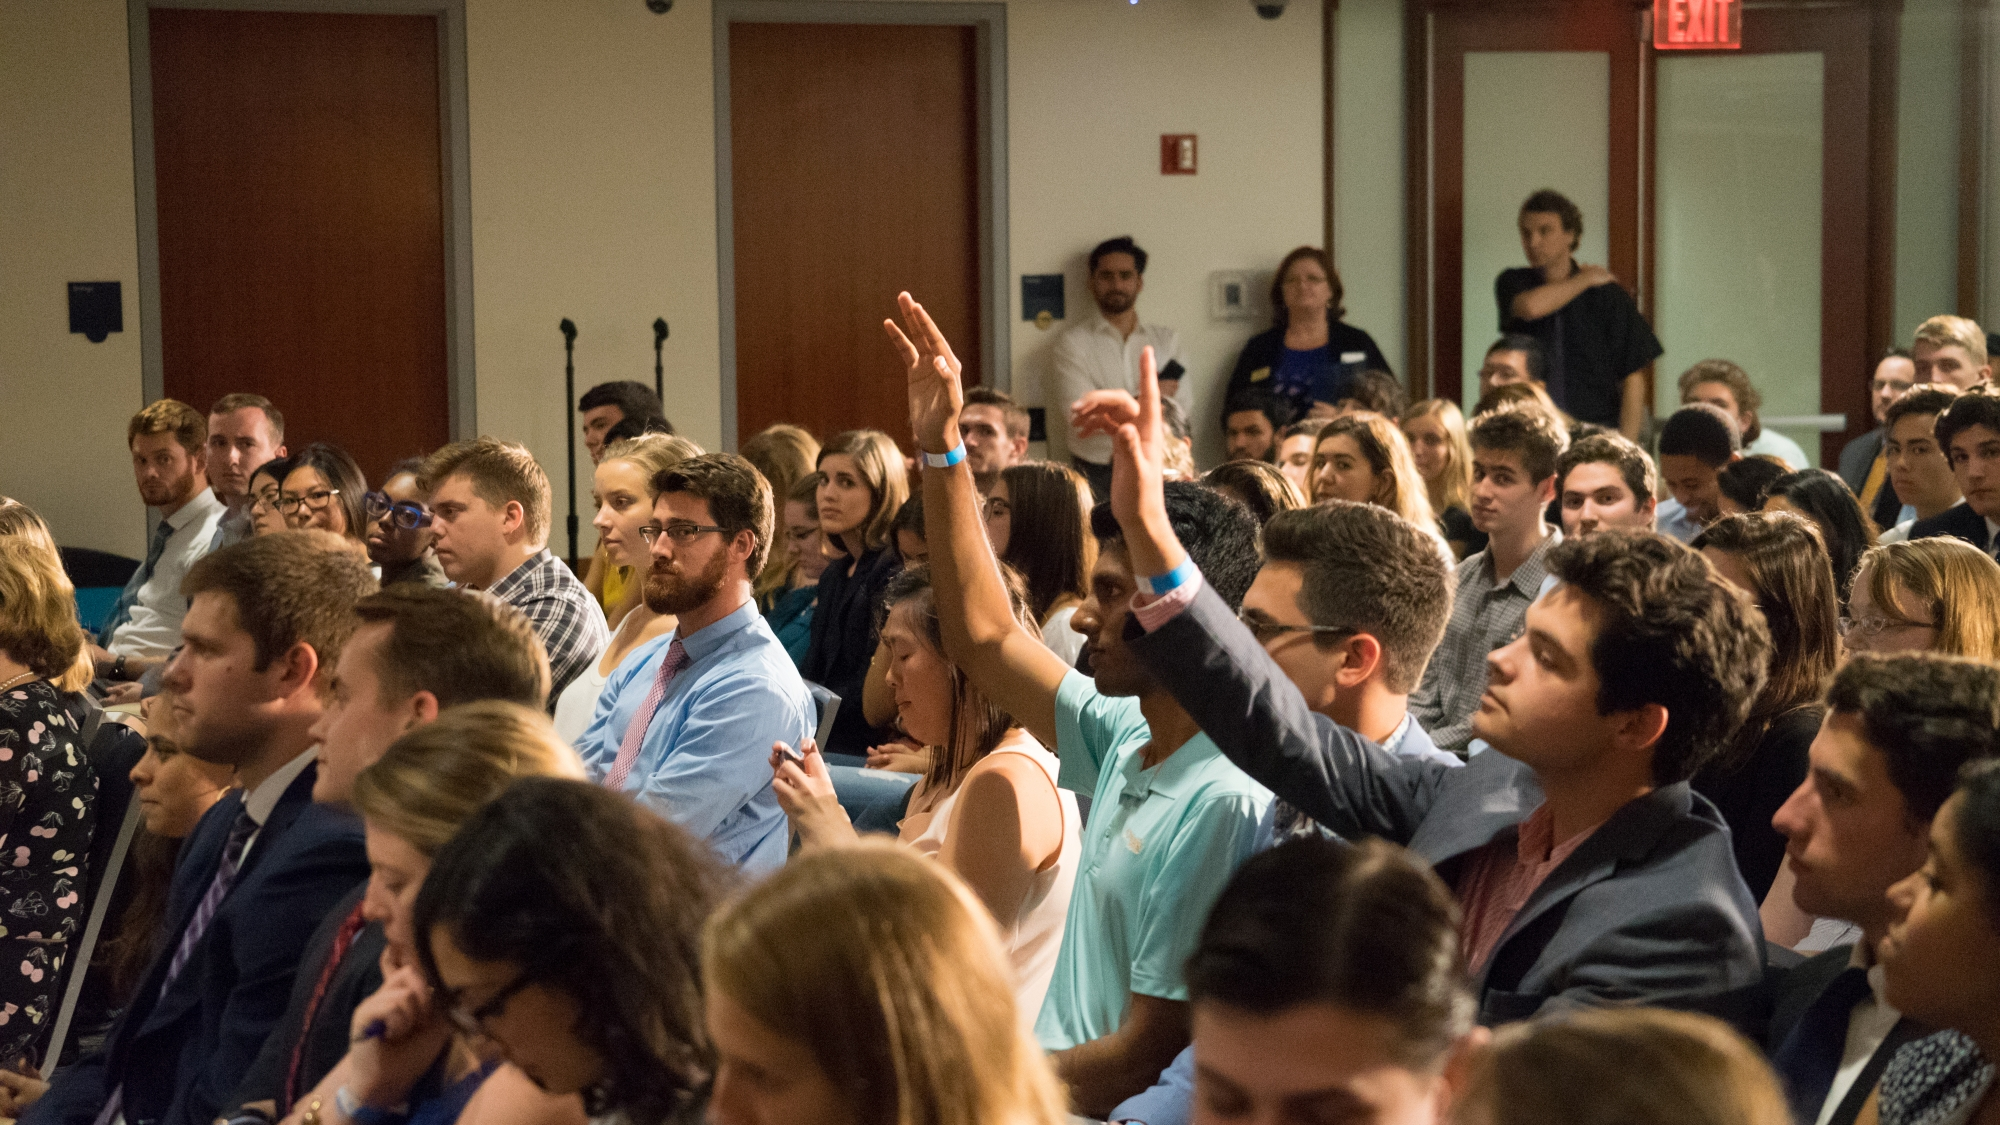 Photo: Audience members raise hands to ask a question to former Director of National of Intelligence James Clapper